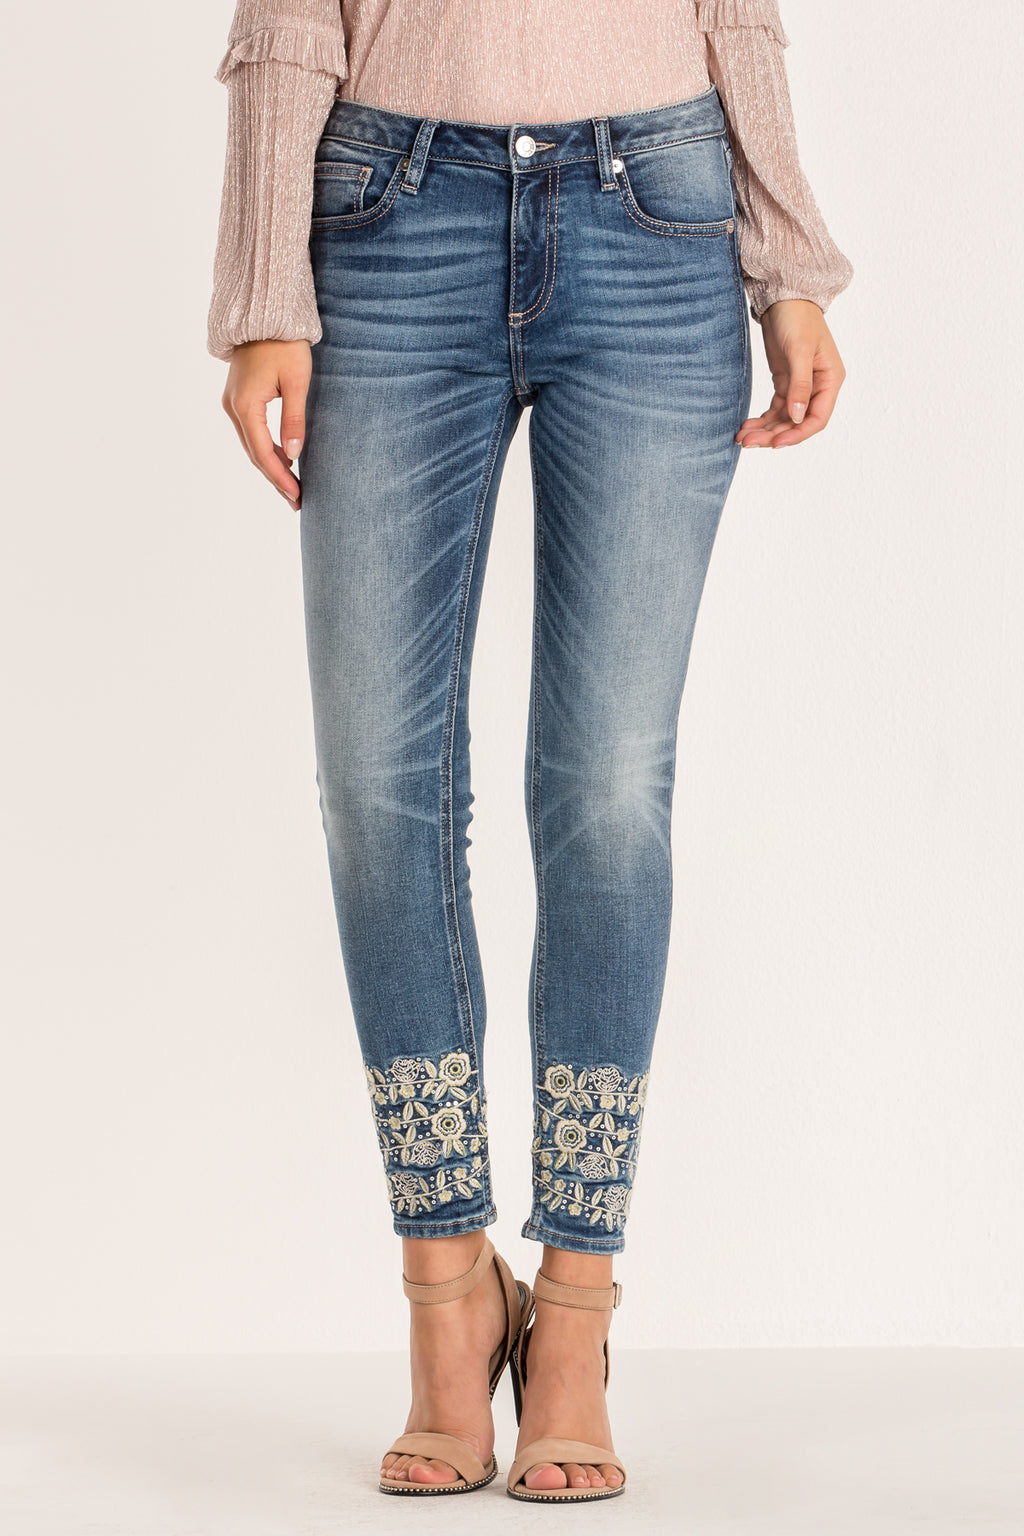 aa25e084752bb FLORAL WHIMSY MID RISE ANKLE SKINNY JEANS